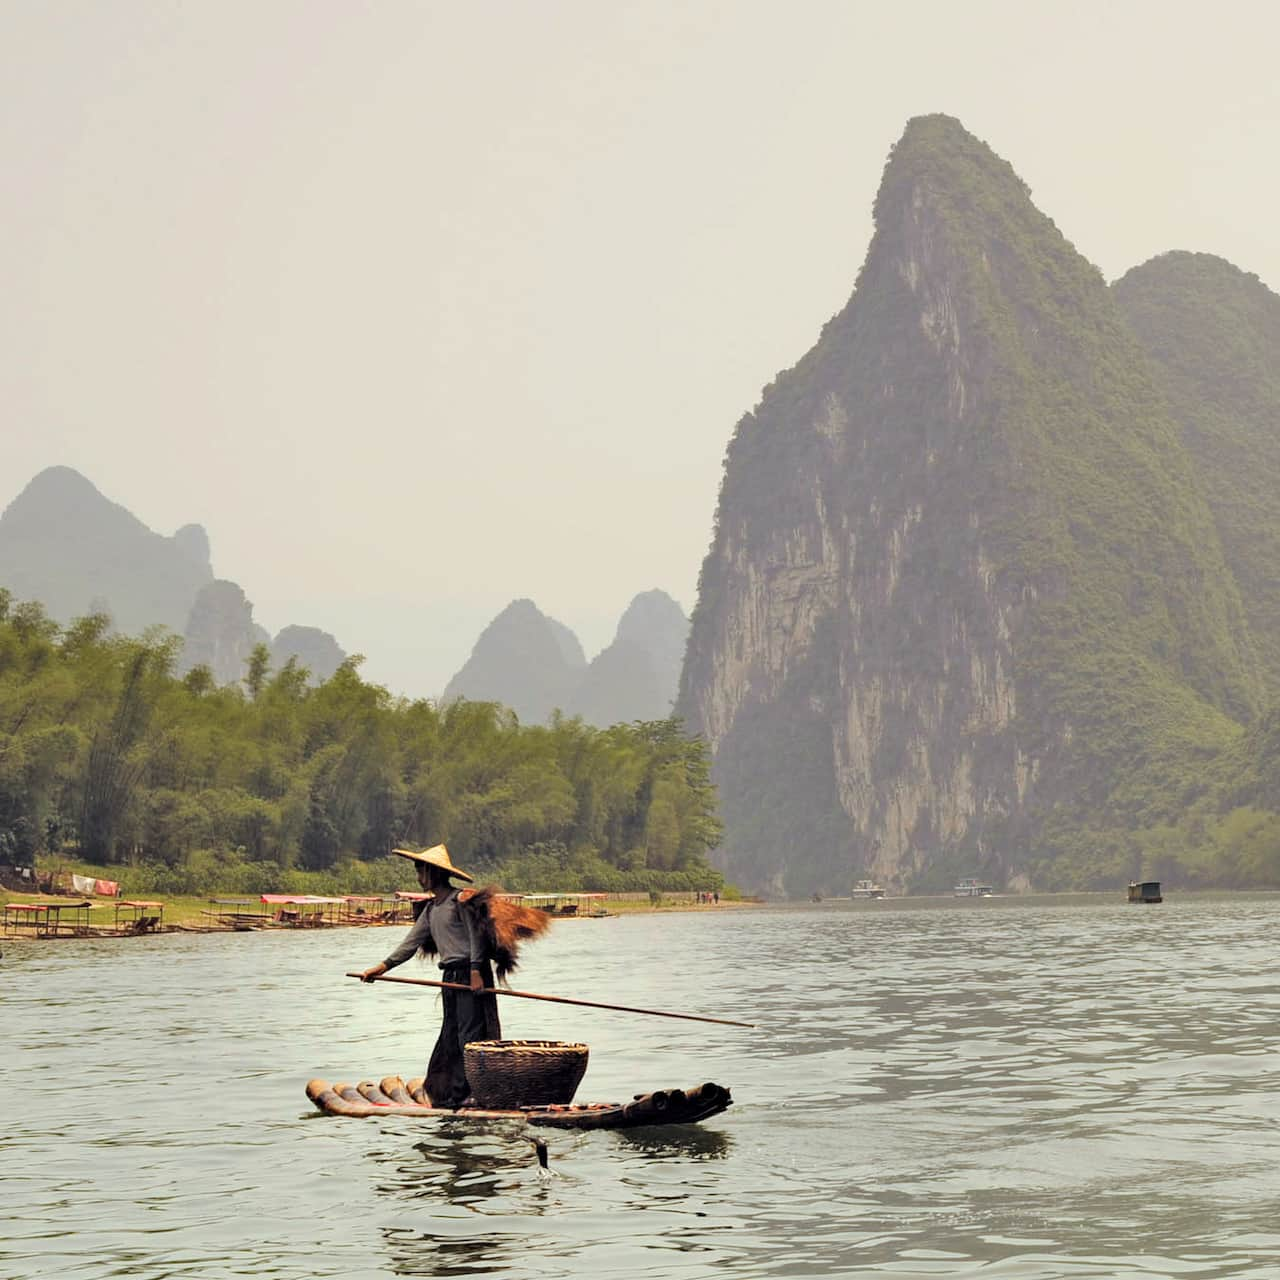 Fishermen ride on bamboo rafts along the Li River against the backdrop of spectacular scenery